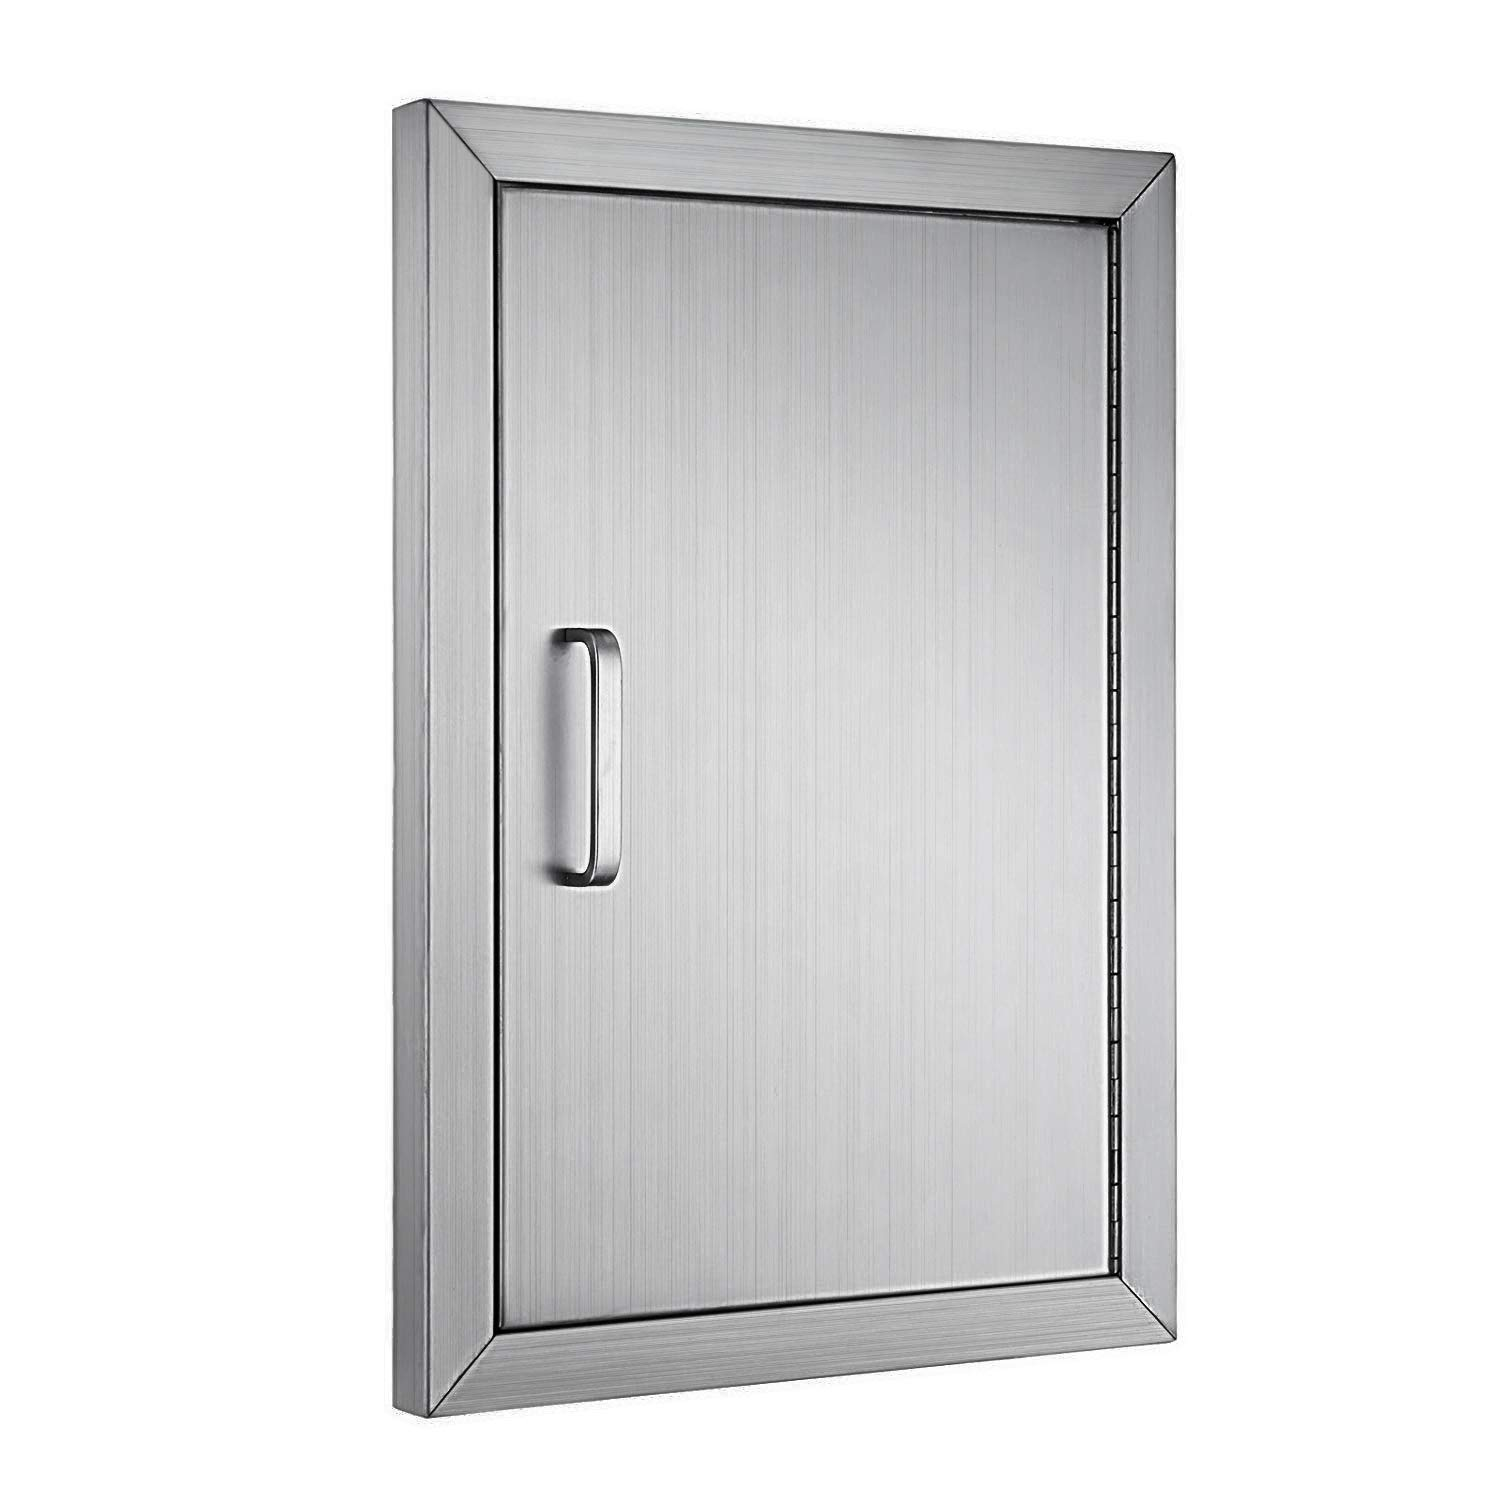 Happybuy BBQ Access Single Door Wall Construction Cutout 14W x 20H Inches Outdoor Kitchen Access Doors 304 Grade Brushed Stainless Steel Heavy Duty by Happybuy